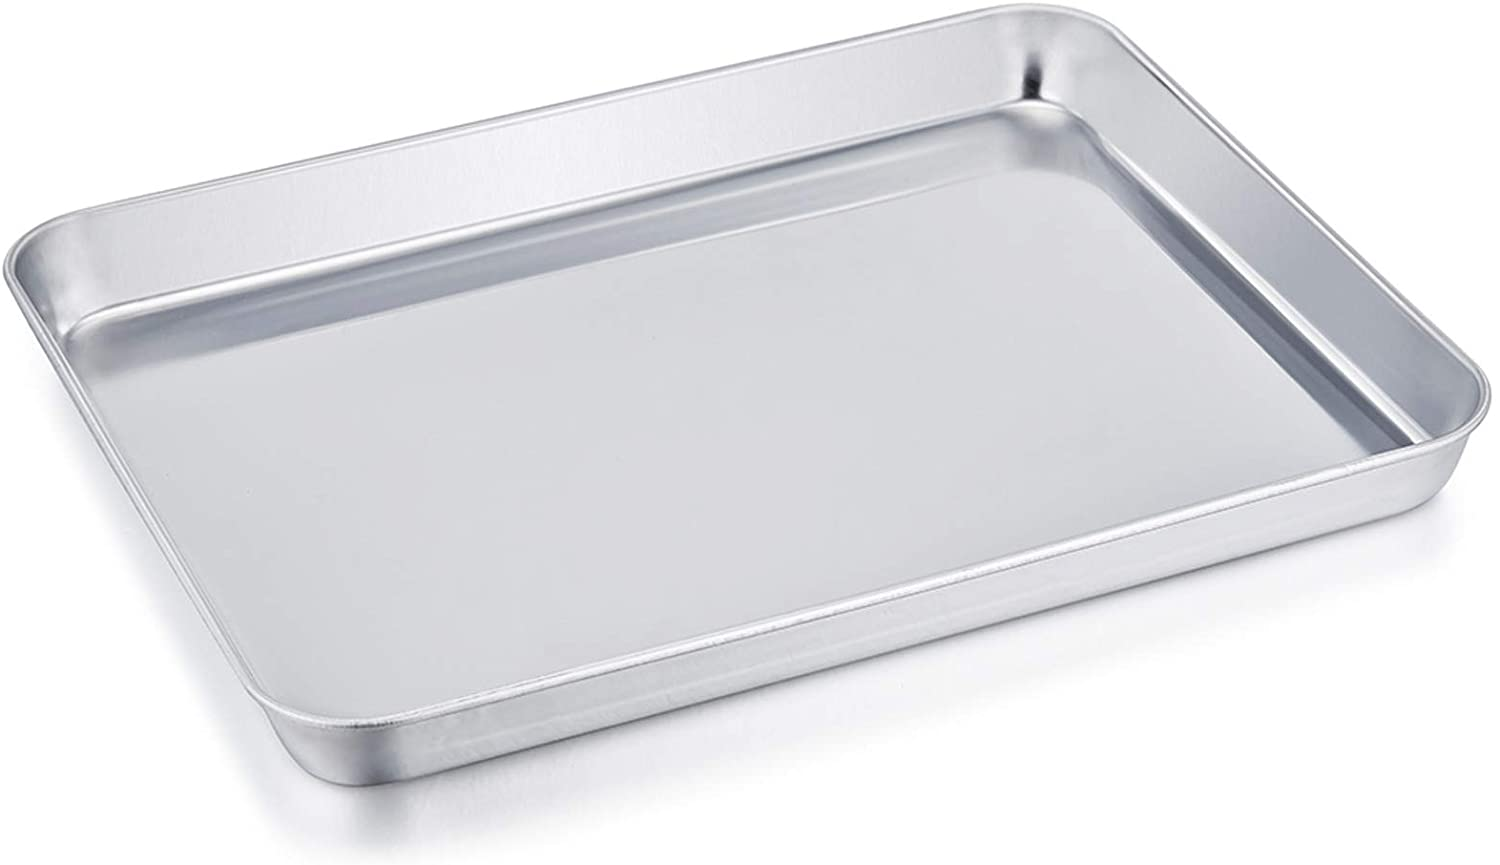 8/'/'x10/'/'x1/' Stainless Steel Compact Toaster Oven Pan Tray Ovenware Professional